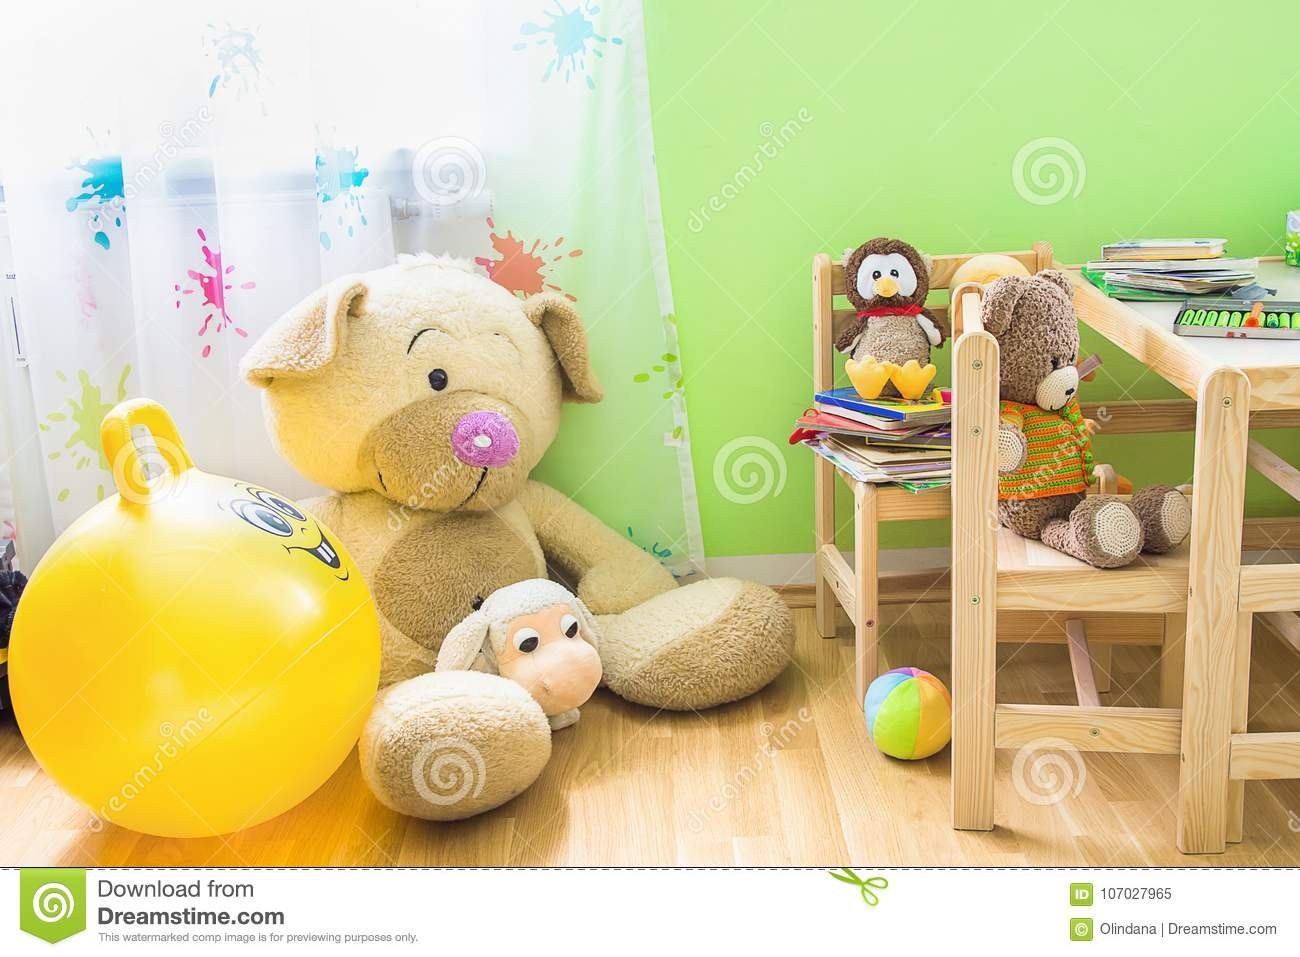 Kids Room Interior with Wooden Furniture Set. Teddy Bear on Chair Big Plush Toys Books Crayons on Table.